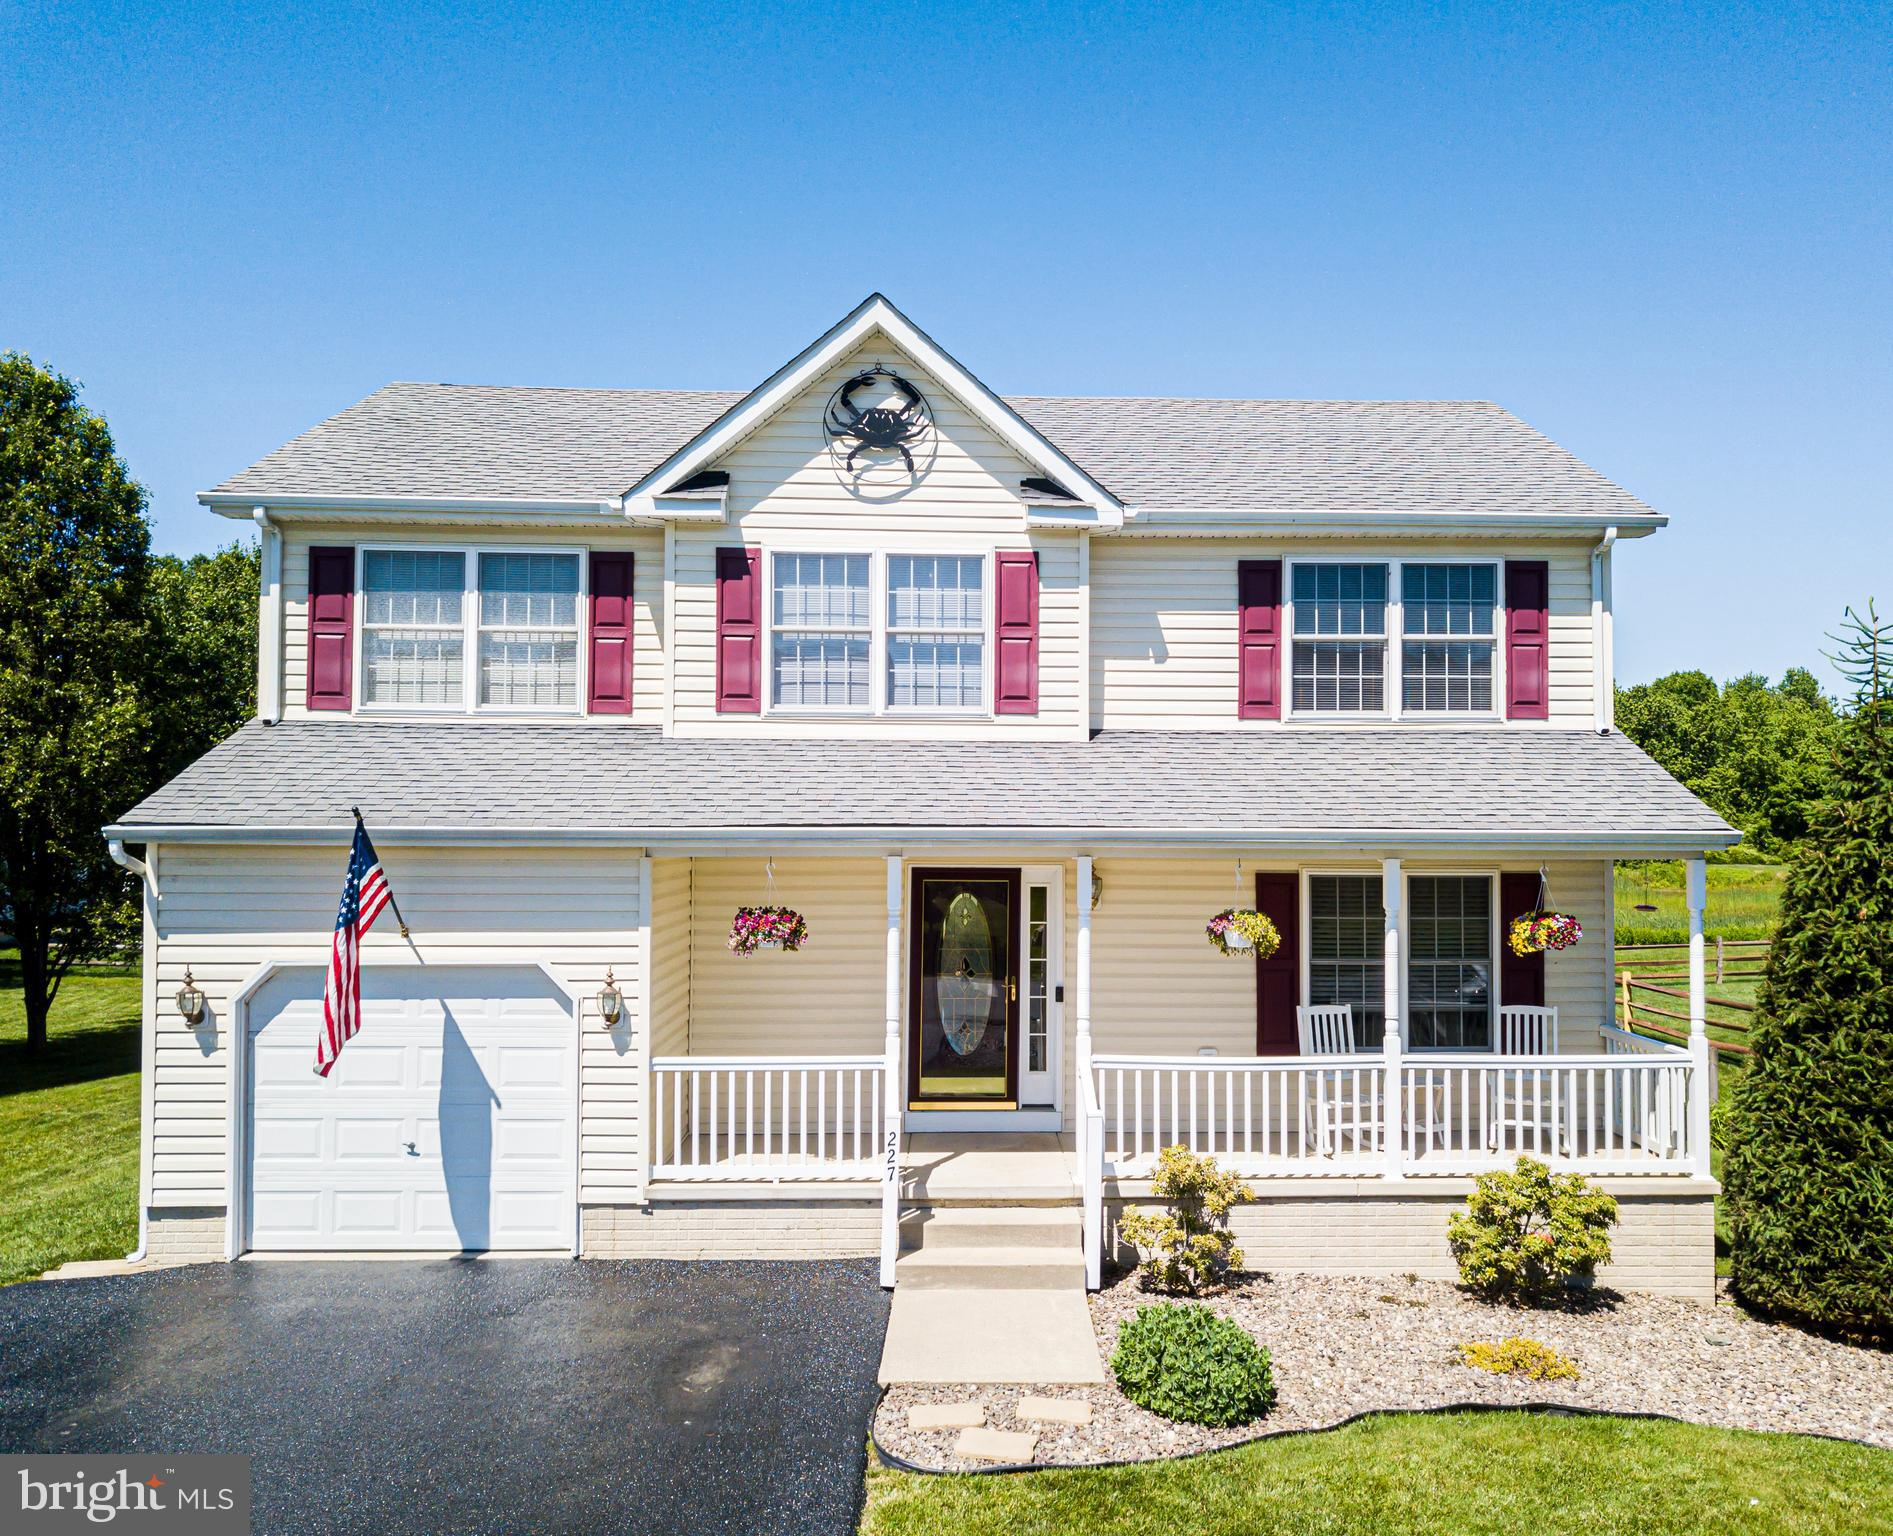 4 Bedrooms 2.5 bath home with water access to the Elk River in desirable Kensington Courts!   Ready